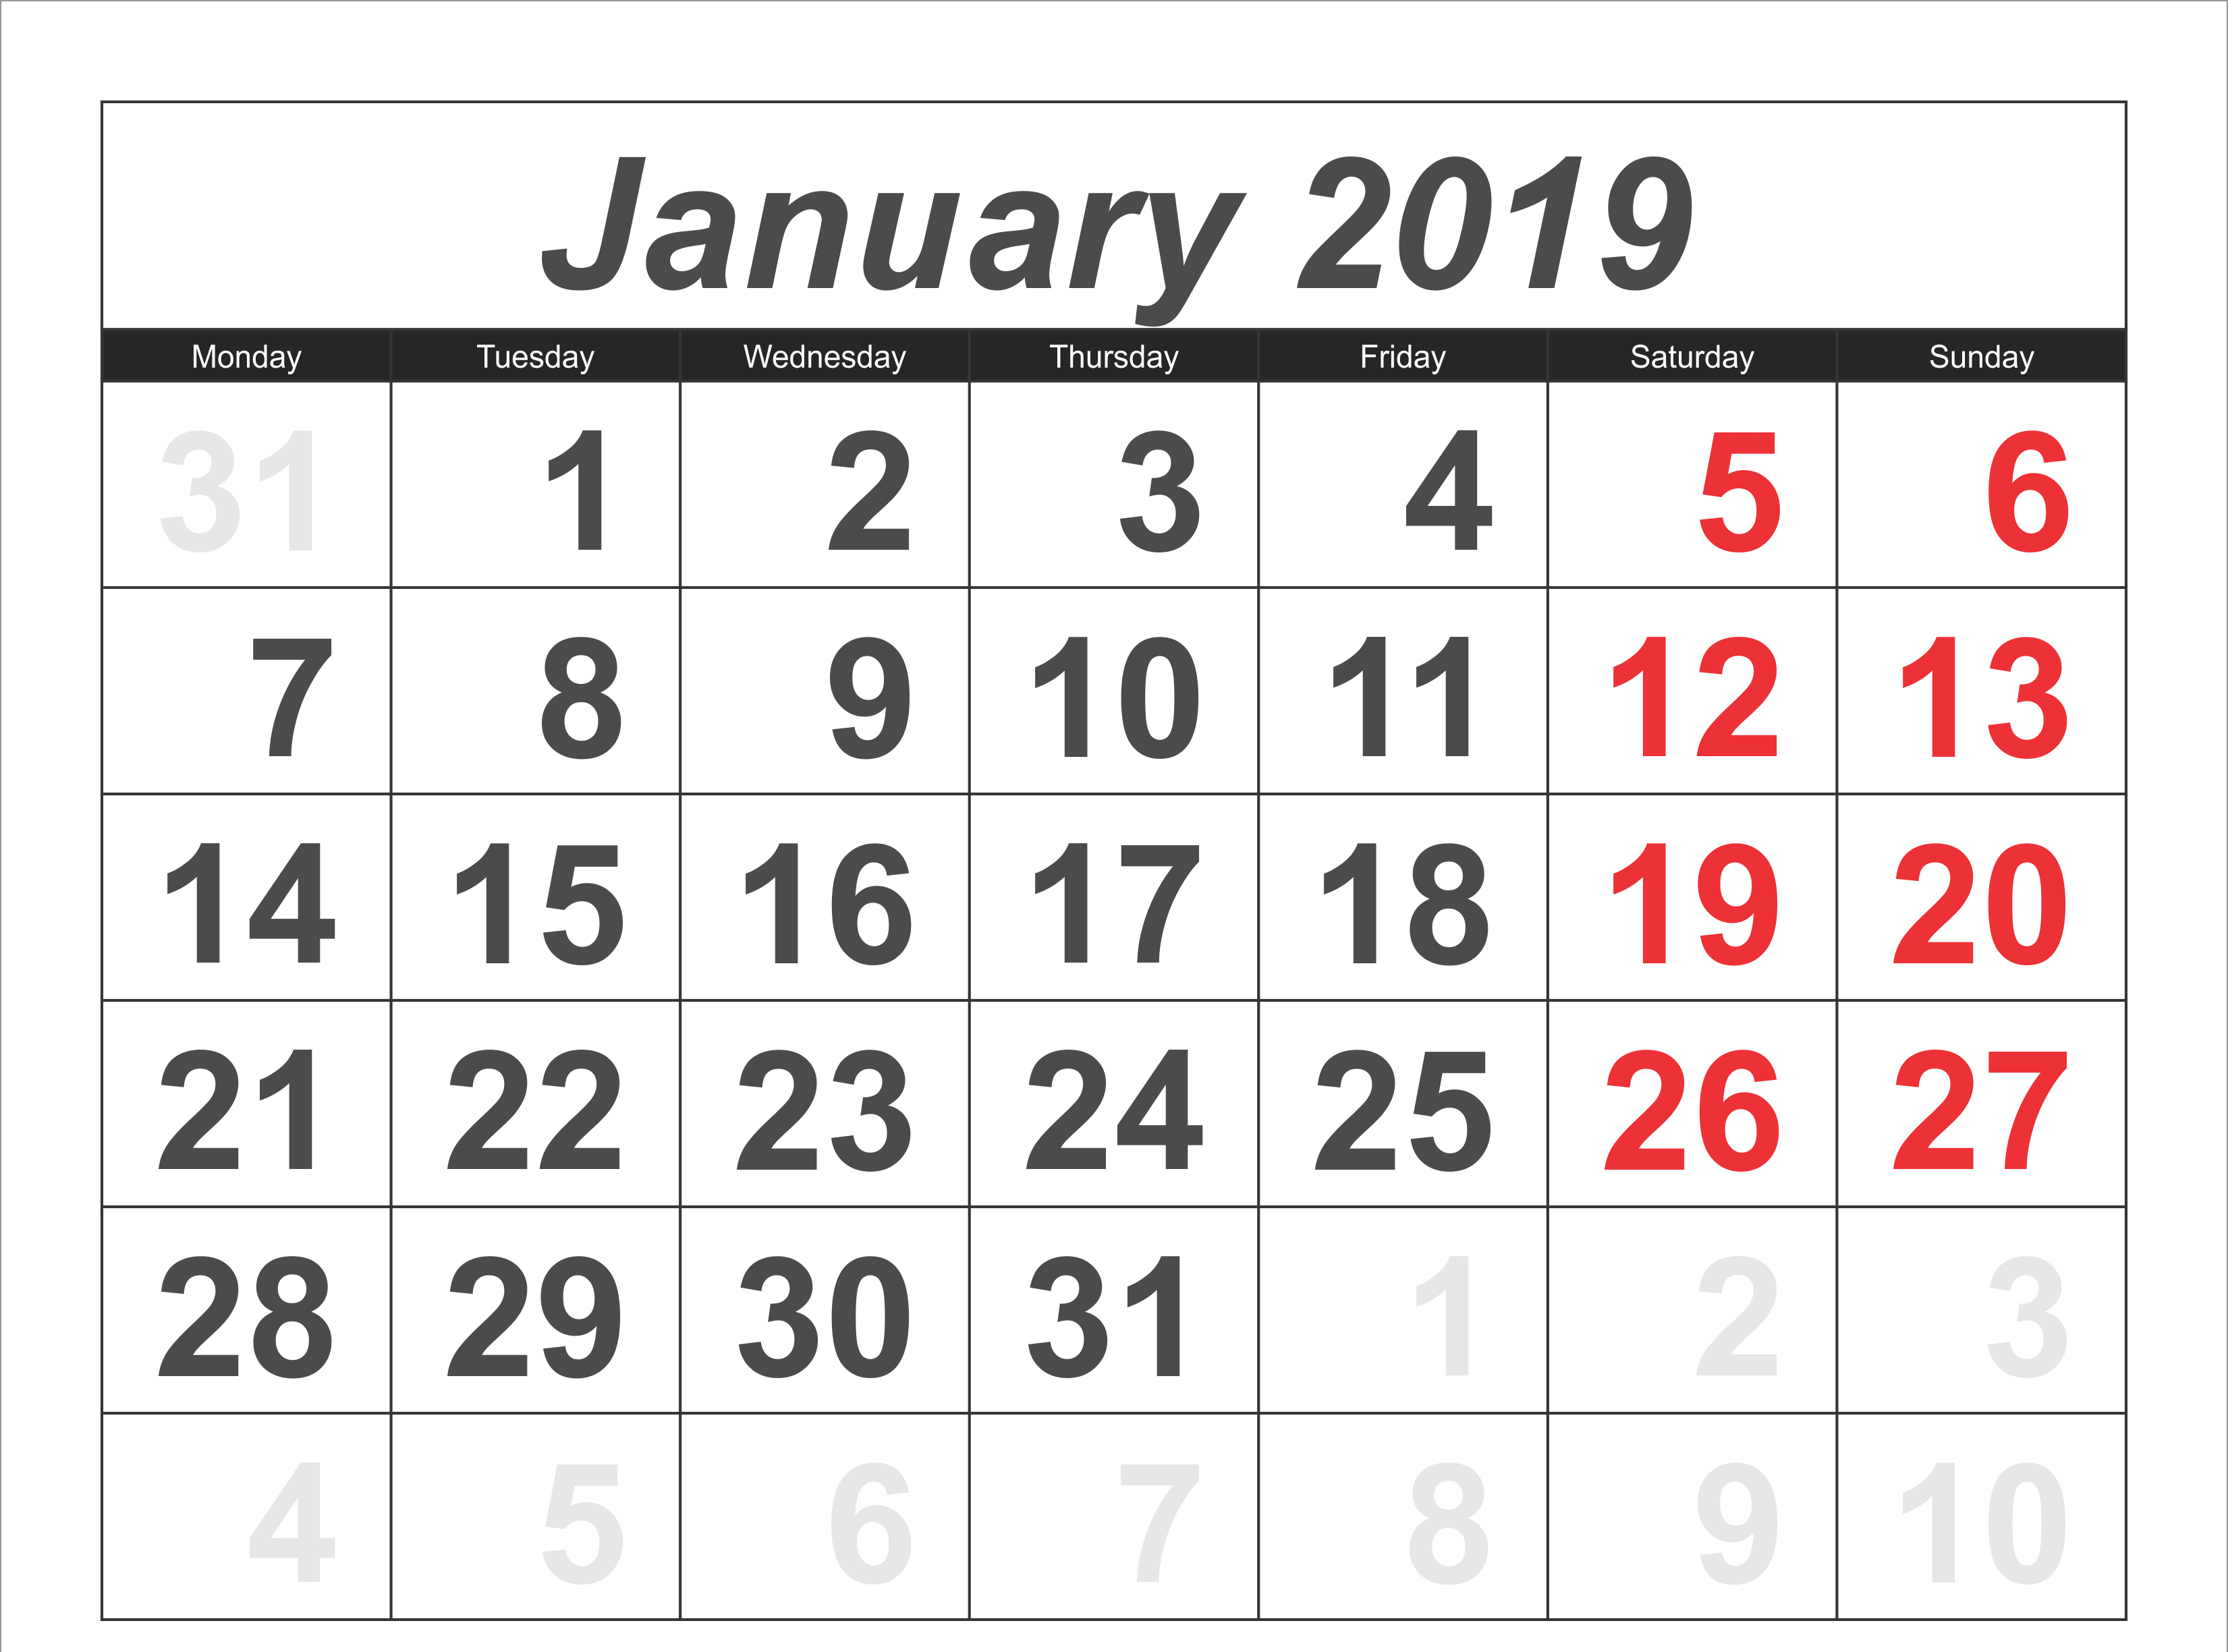 January 2019 Calendar Template USA